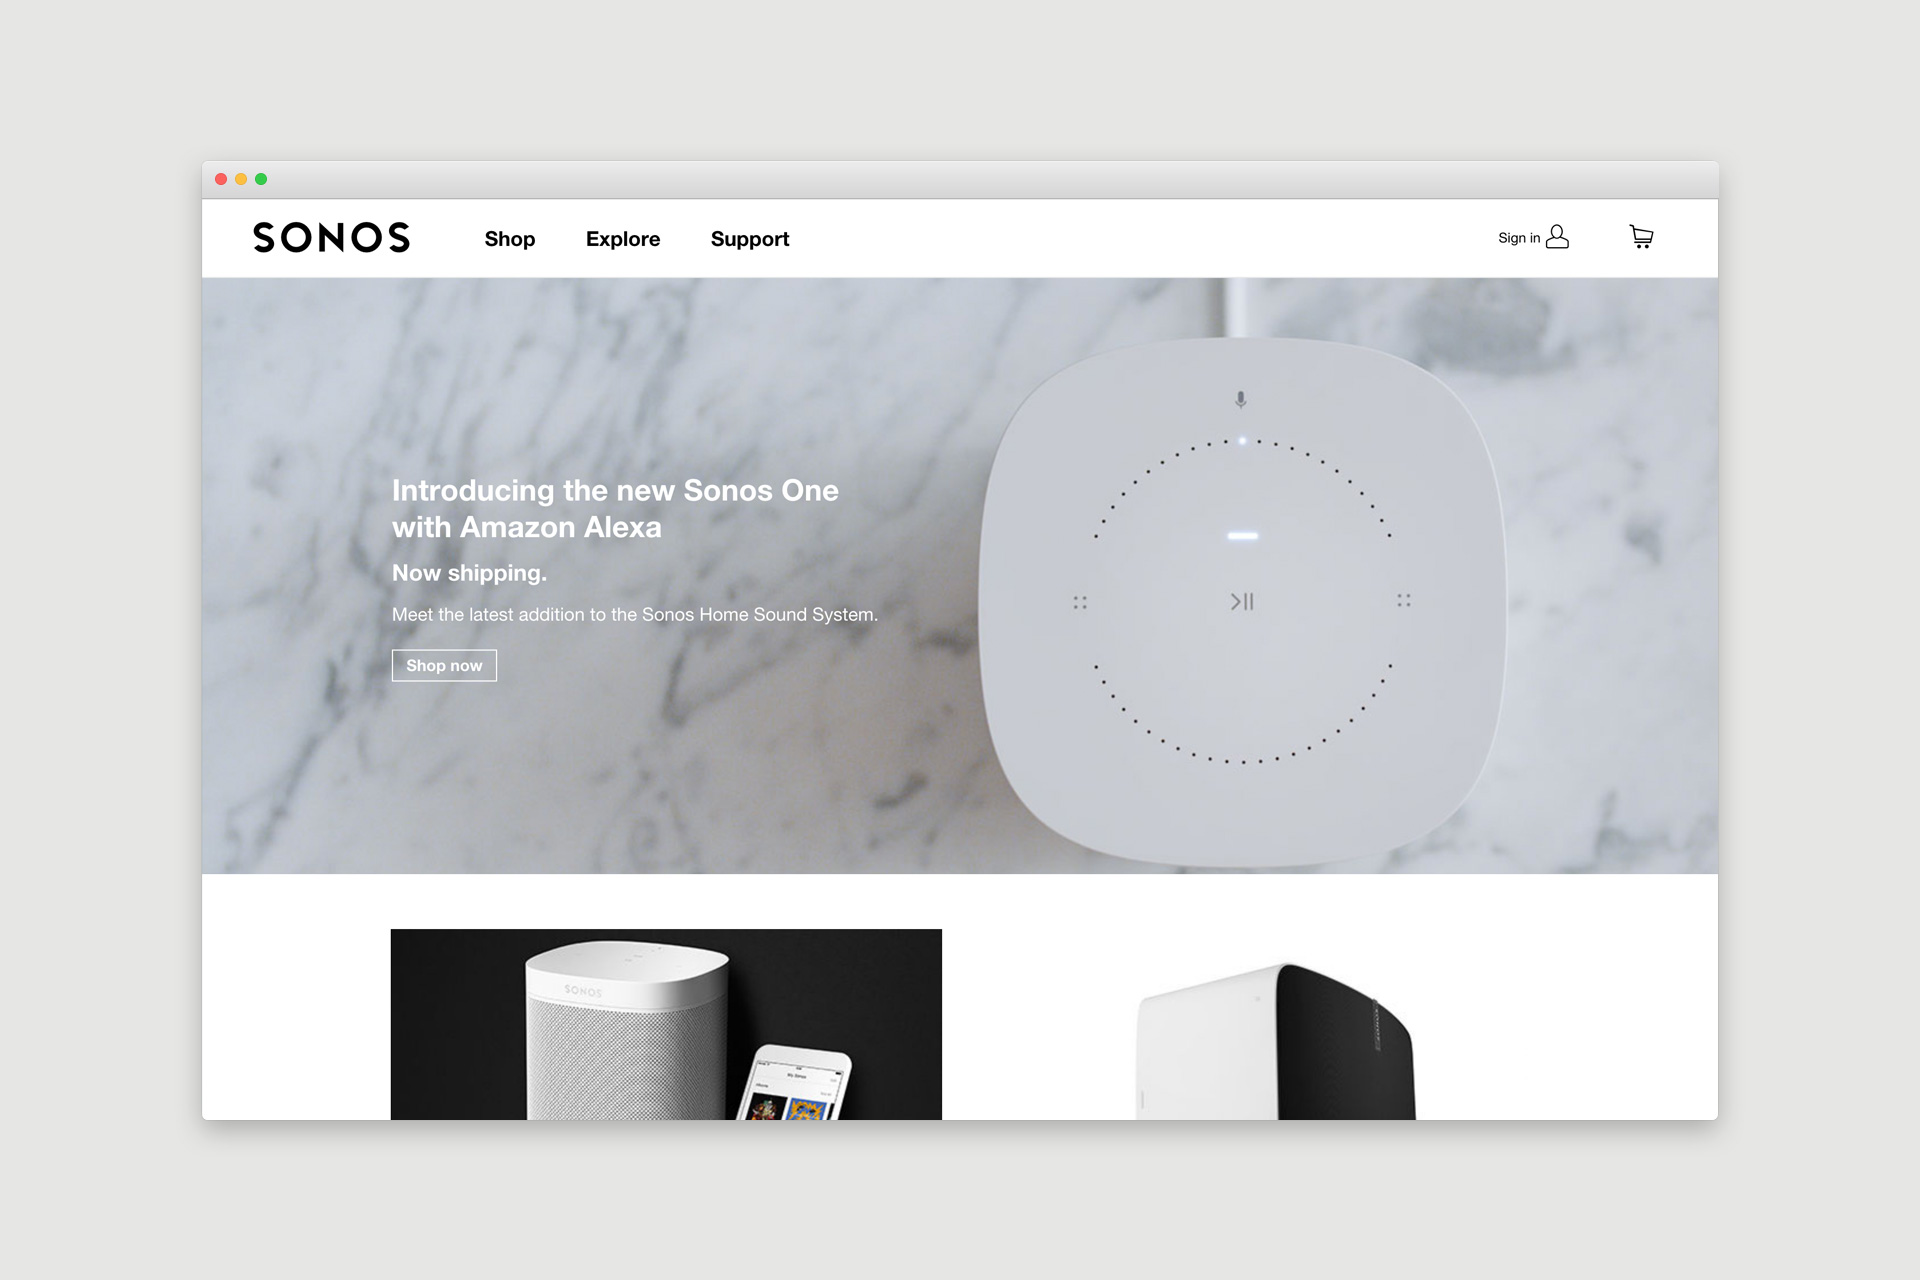 Sonos Website Design